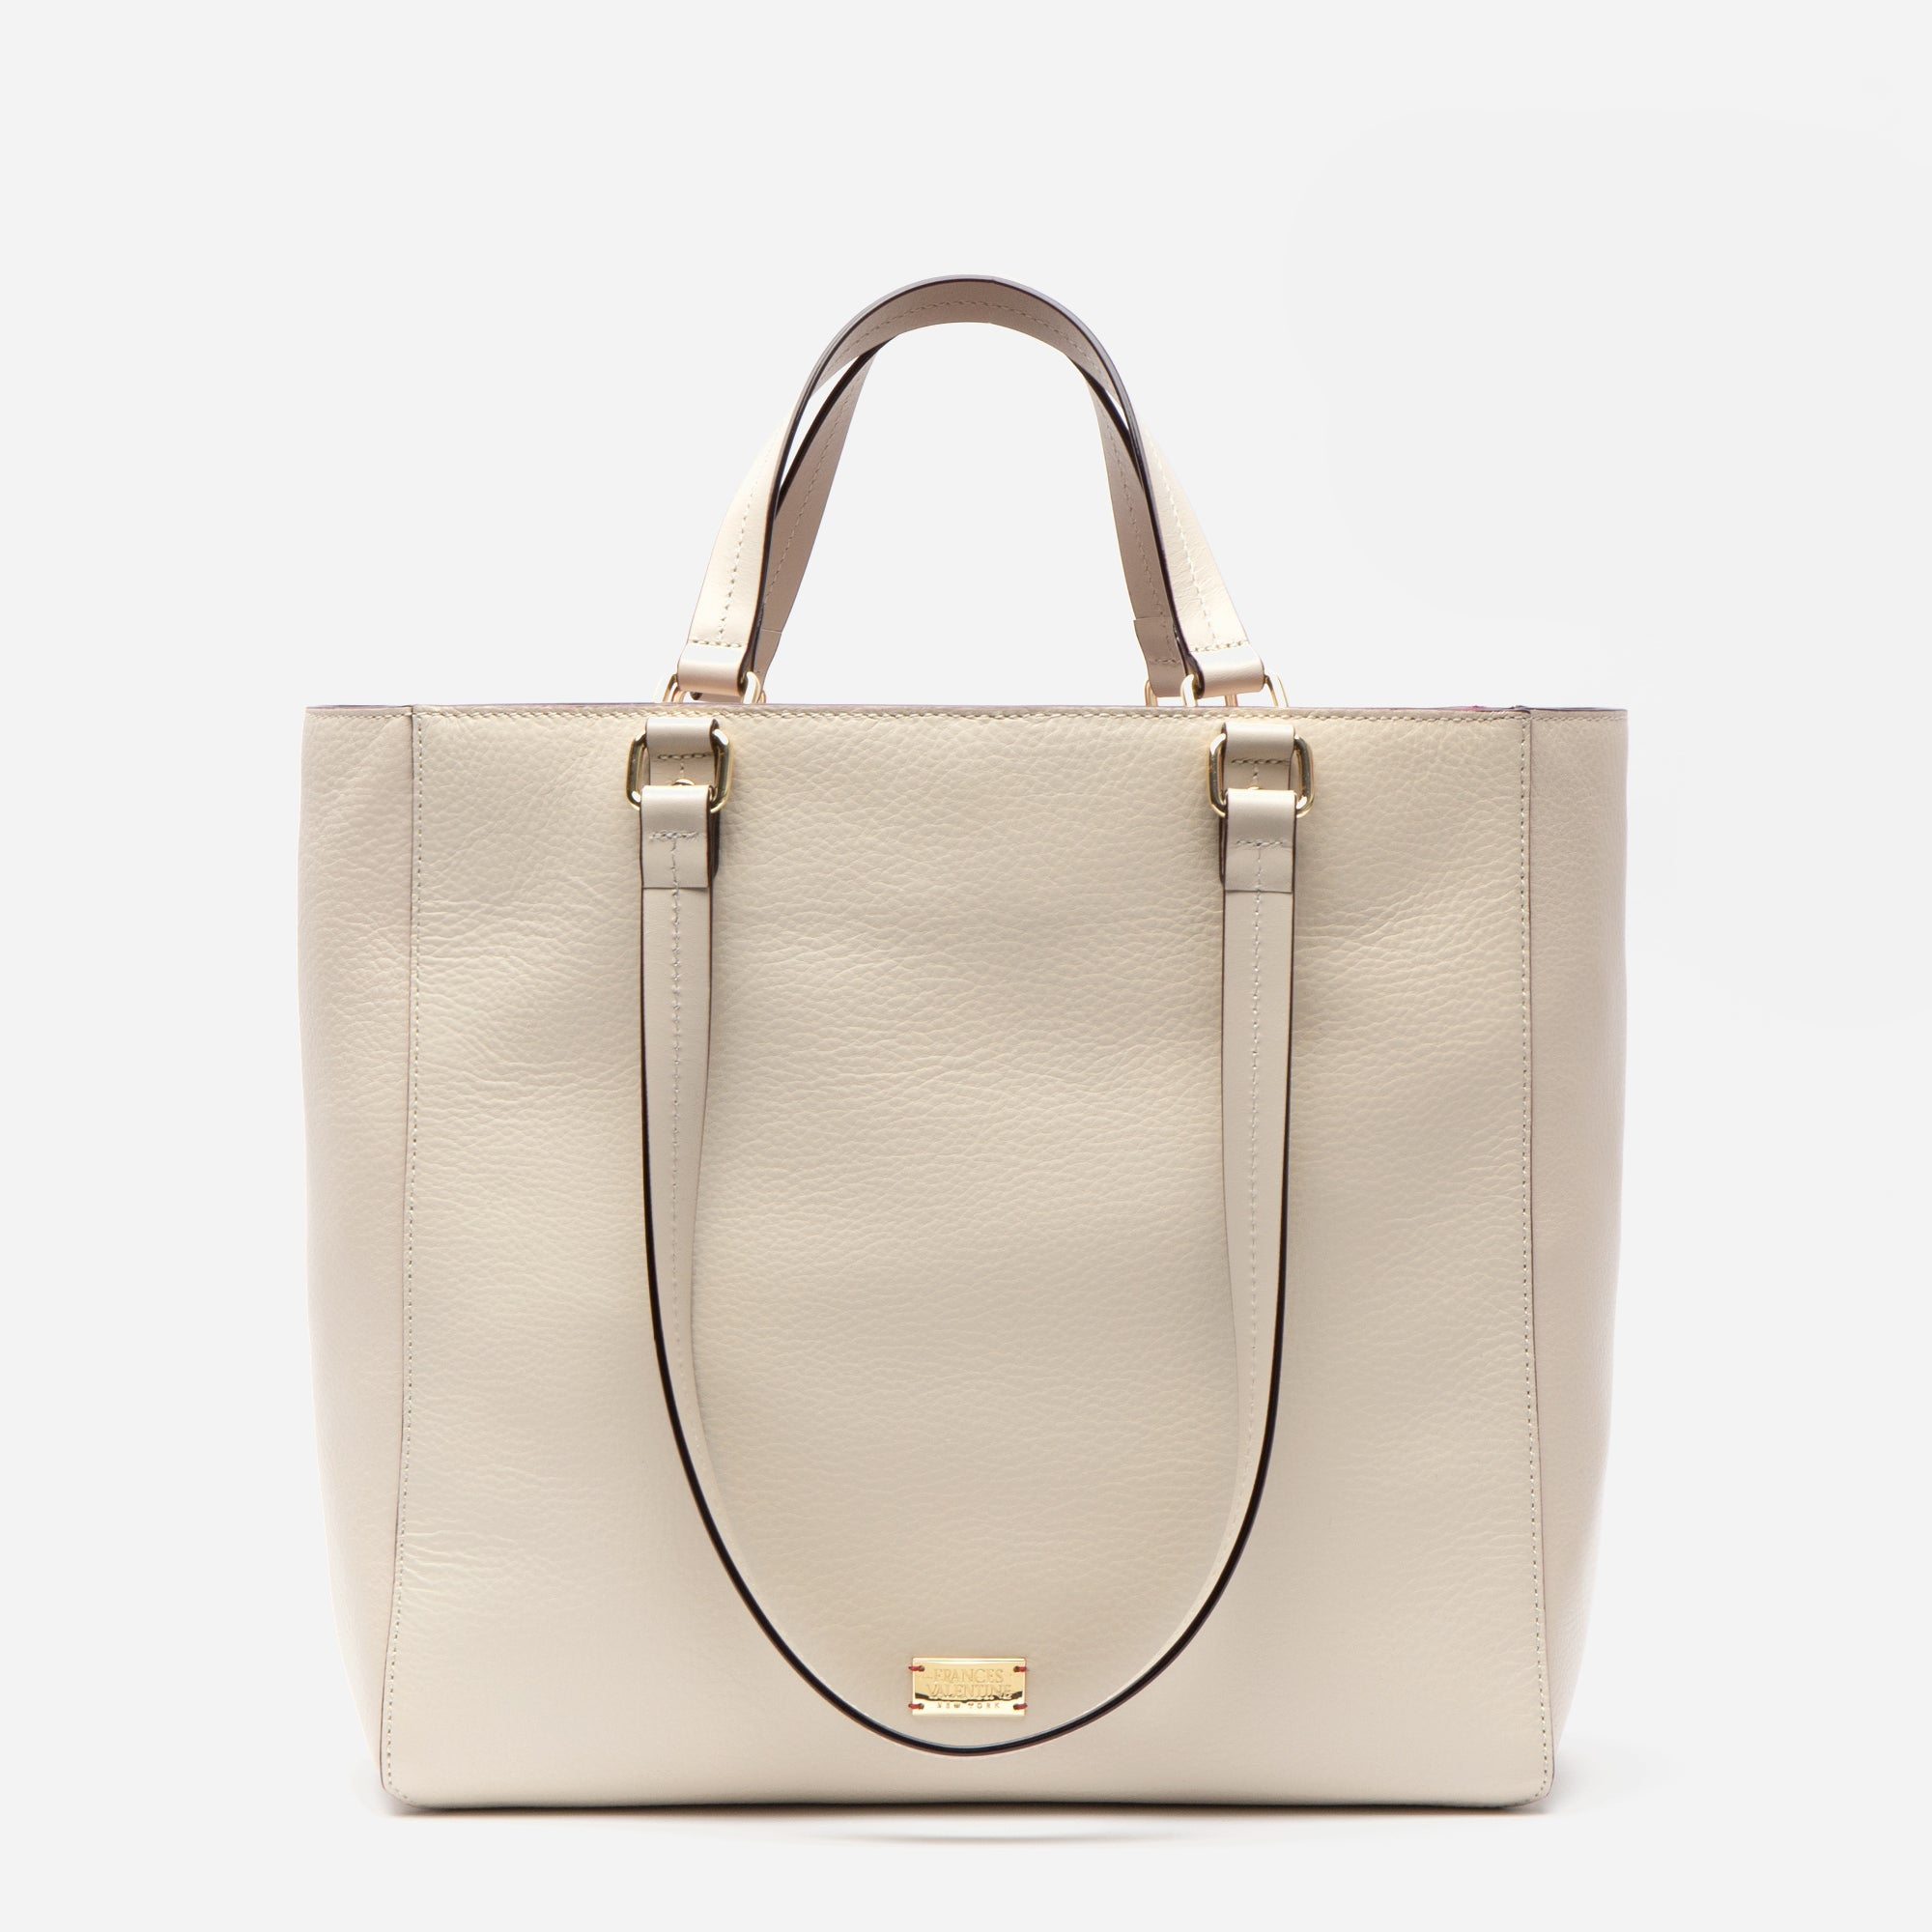 Margie Tote Tumbled Leather Oyster - Frances Valentine